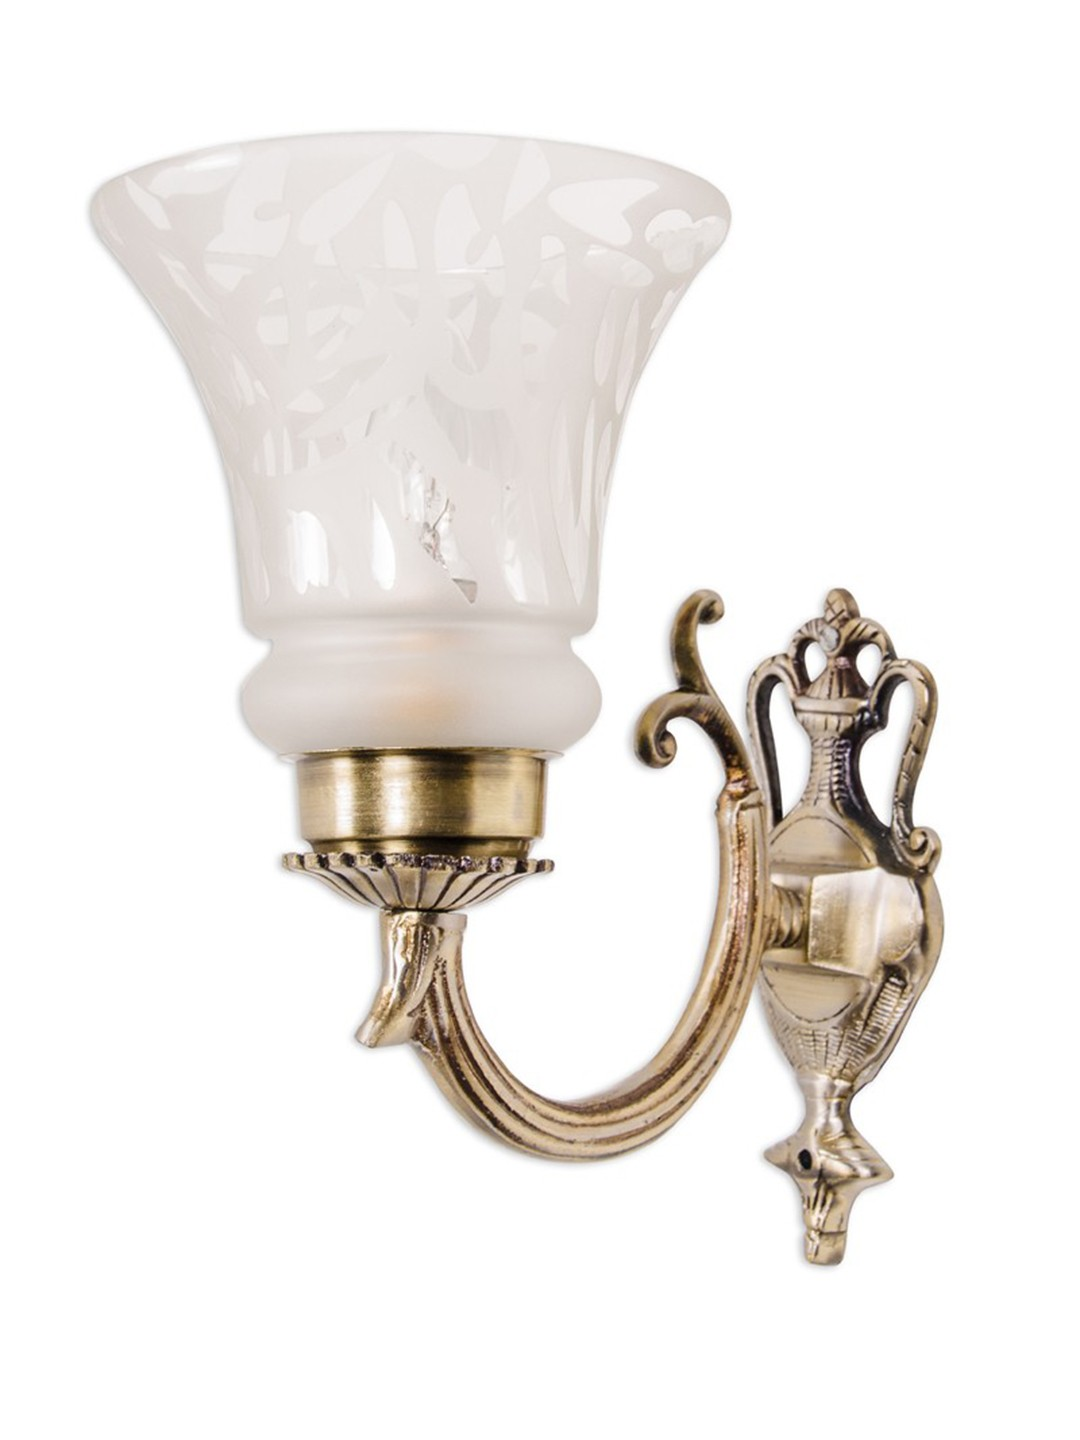 Small Embossed Single U Arm Wall Light